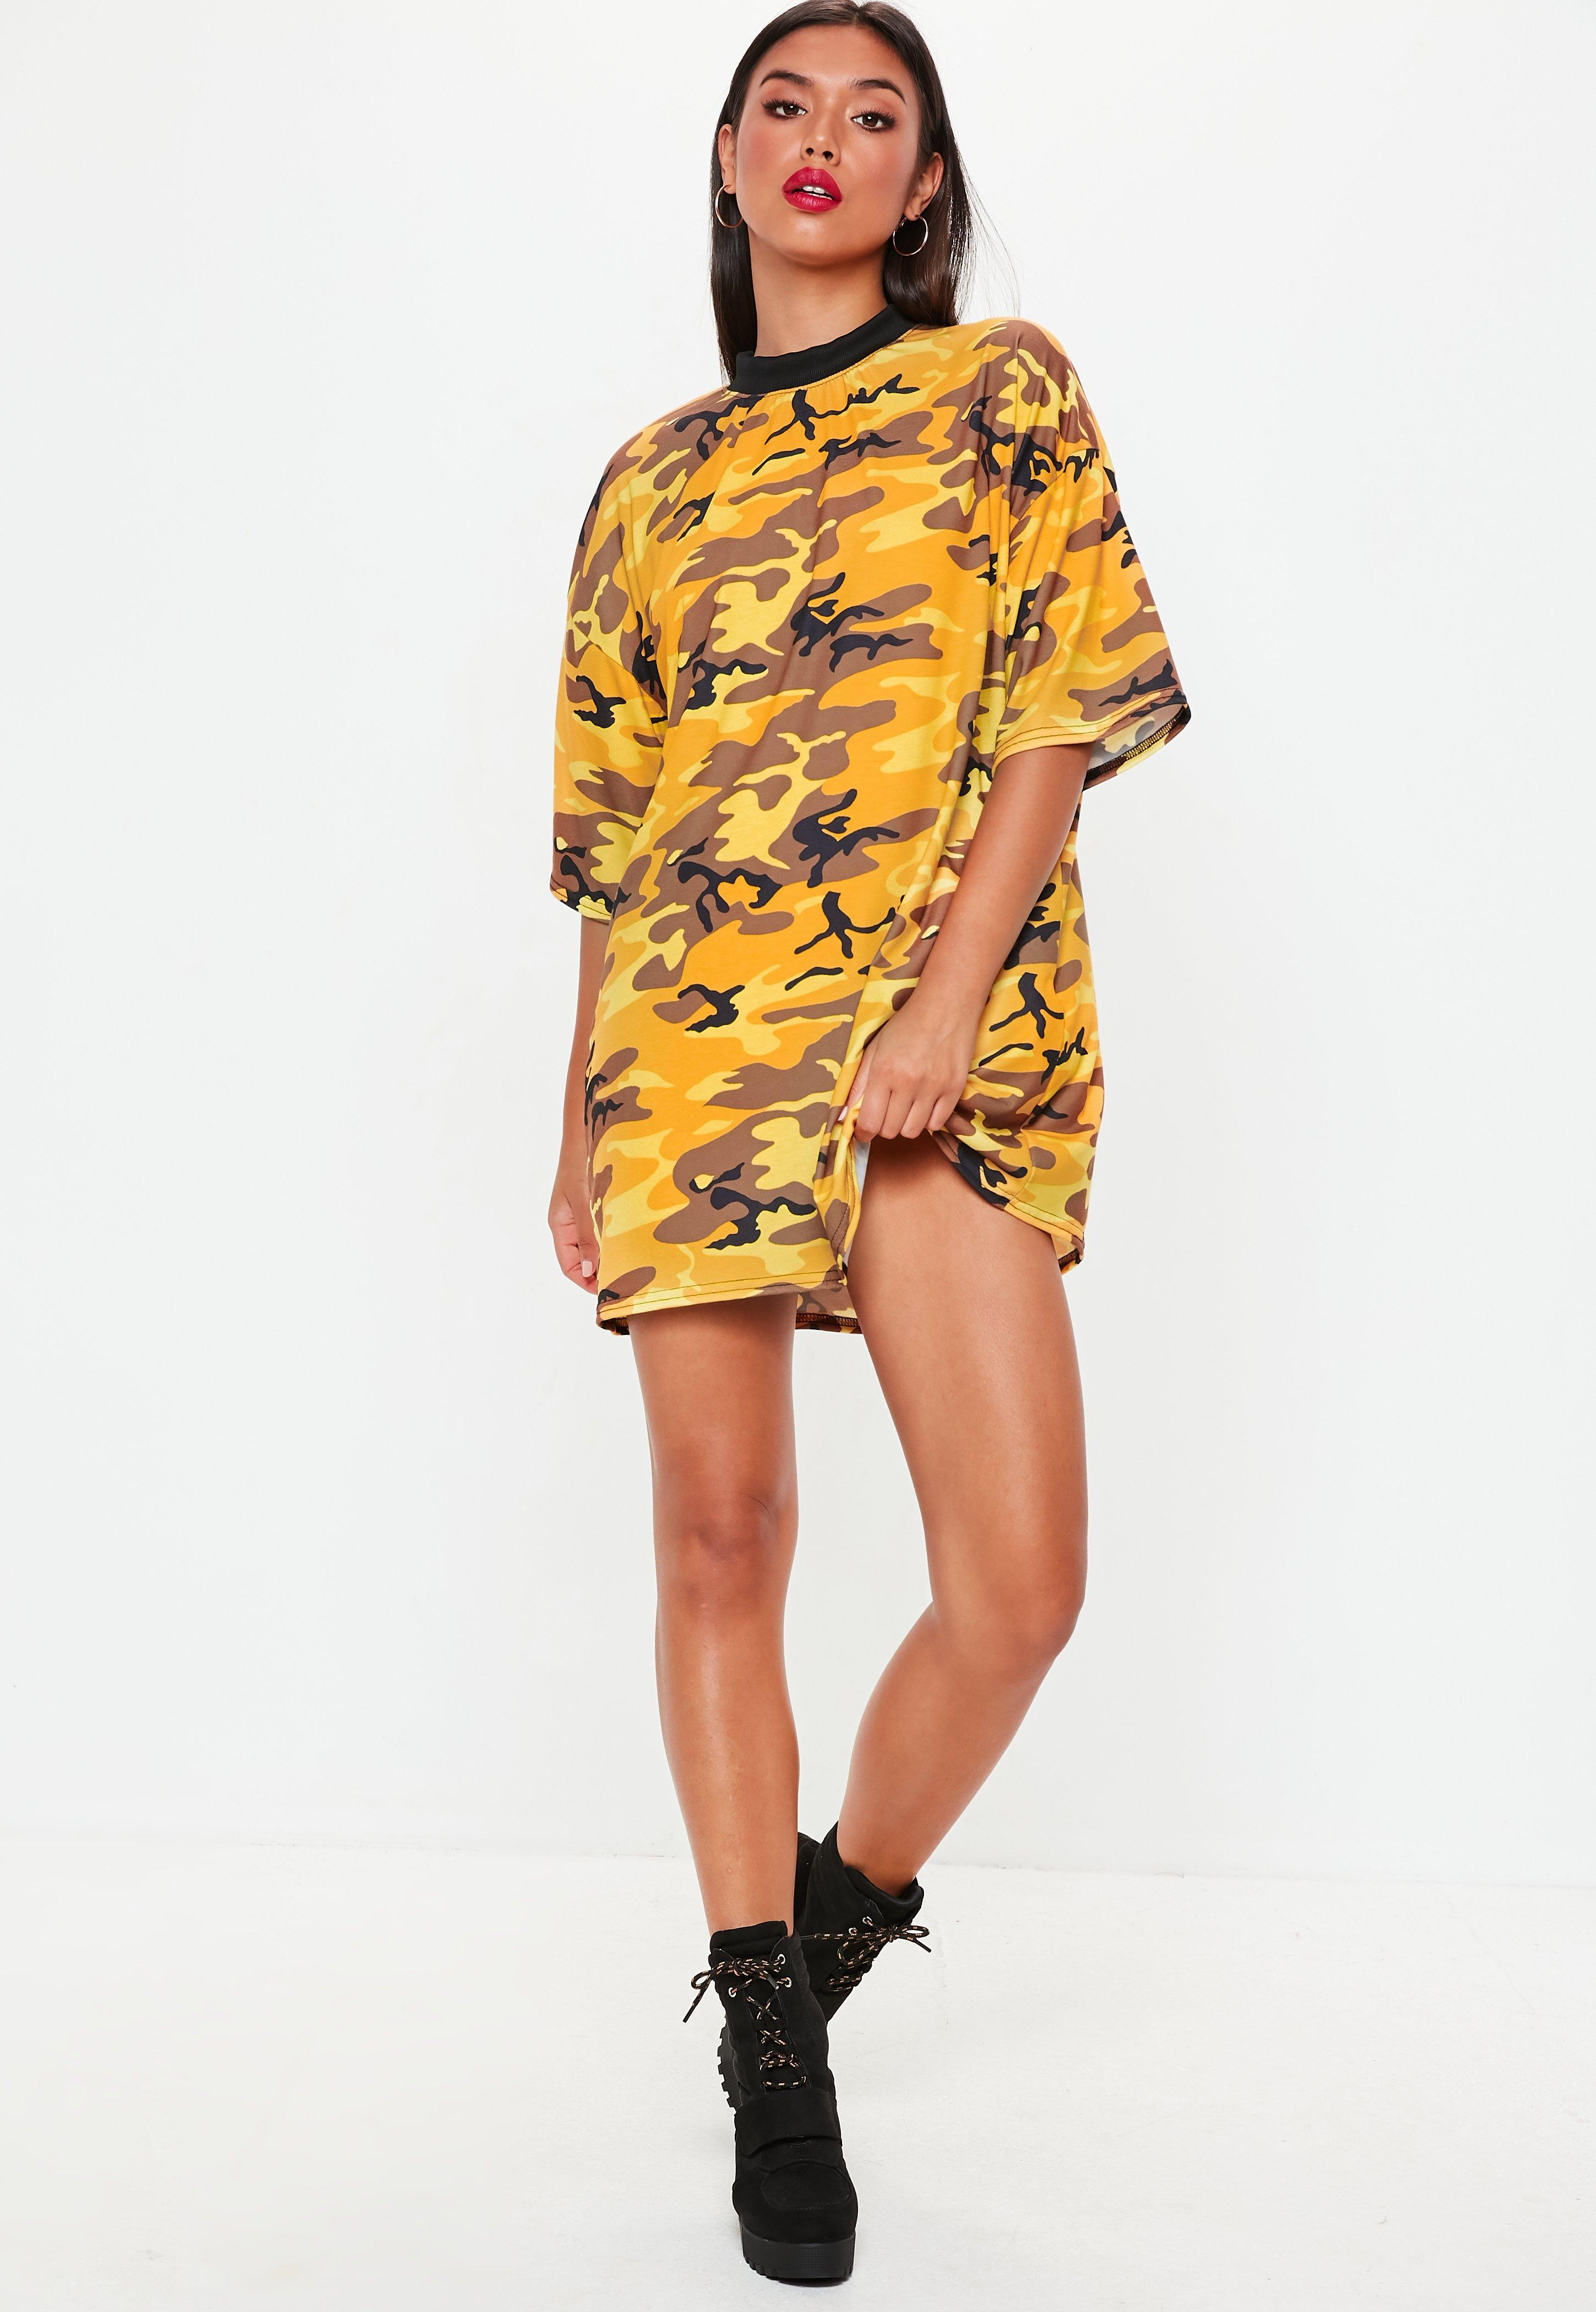 d8e00a6f7615d Lyst - Missguided Yellow Camo Oversized T Shirt Dress in Yellow